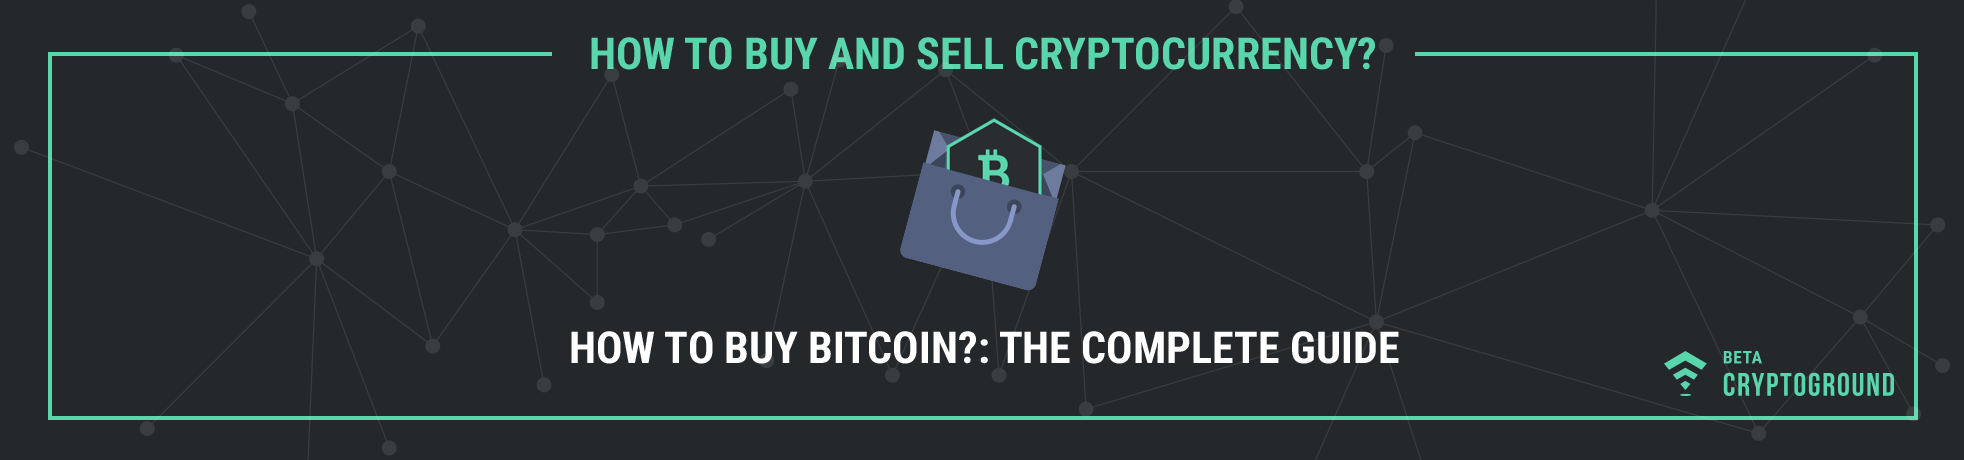 How to Buy Bitcoin? The Complete Guide